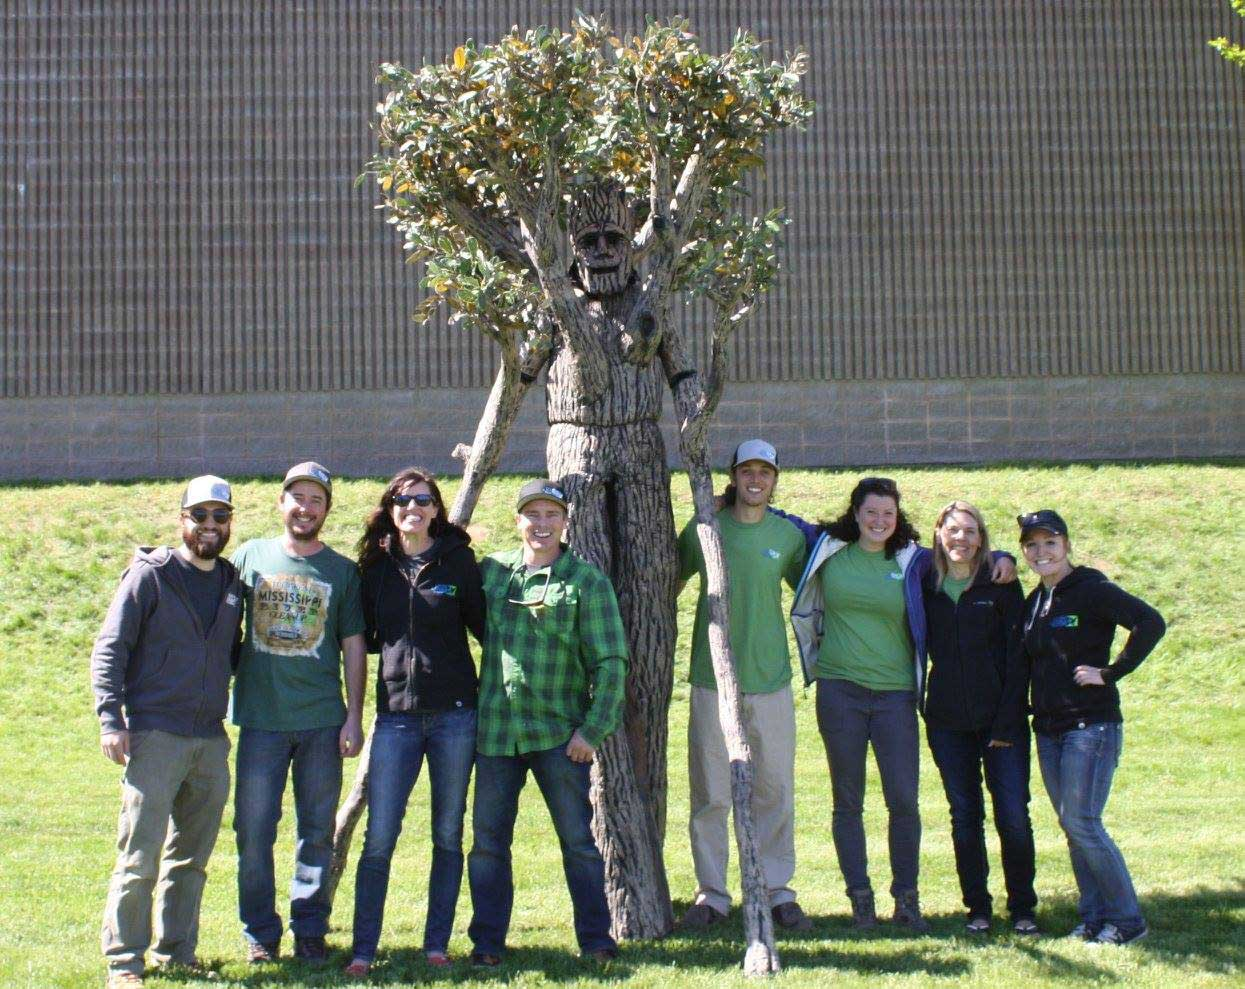 President and Founder of Living Lands & Waters, Chad Pregracke, and his team celebrate the organization planting its 1 Millionth tree - a project that the Dreaming Tree is a proud supporter of.